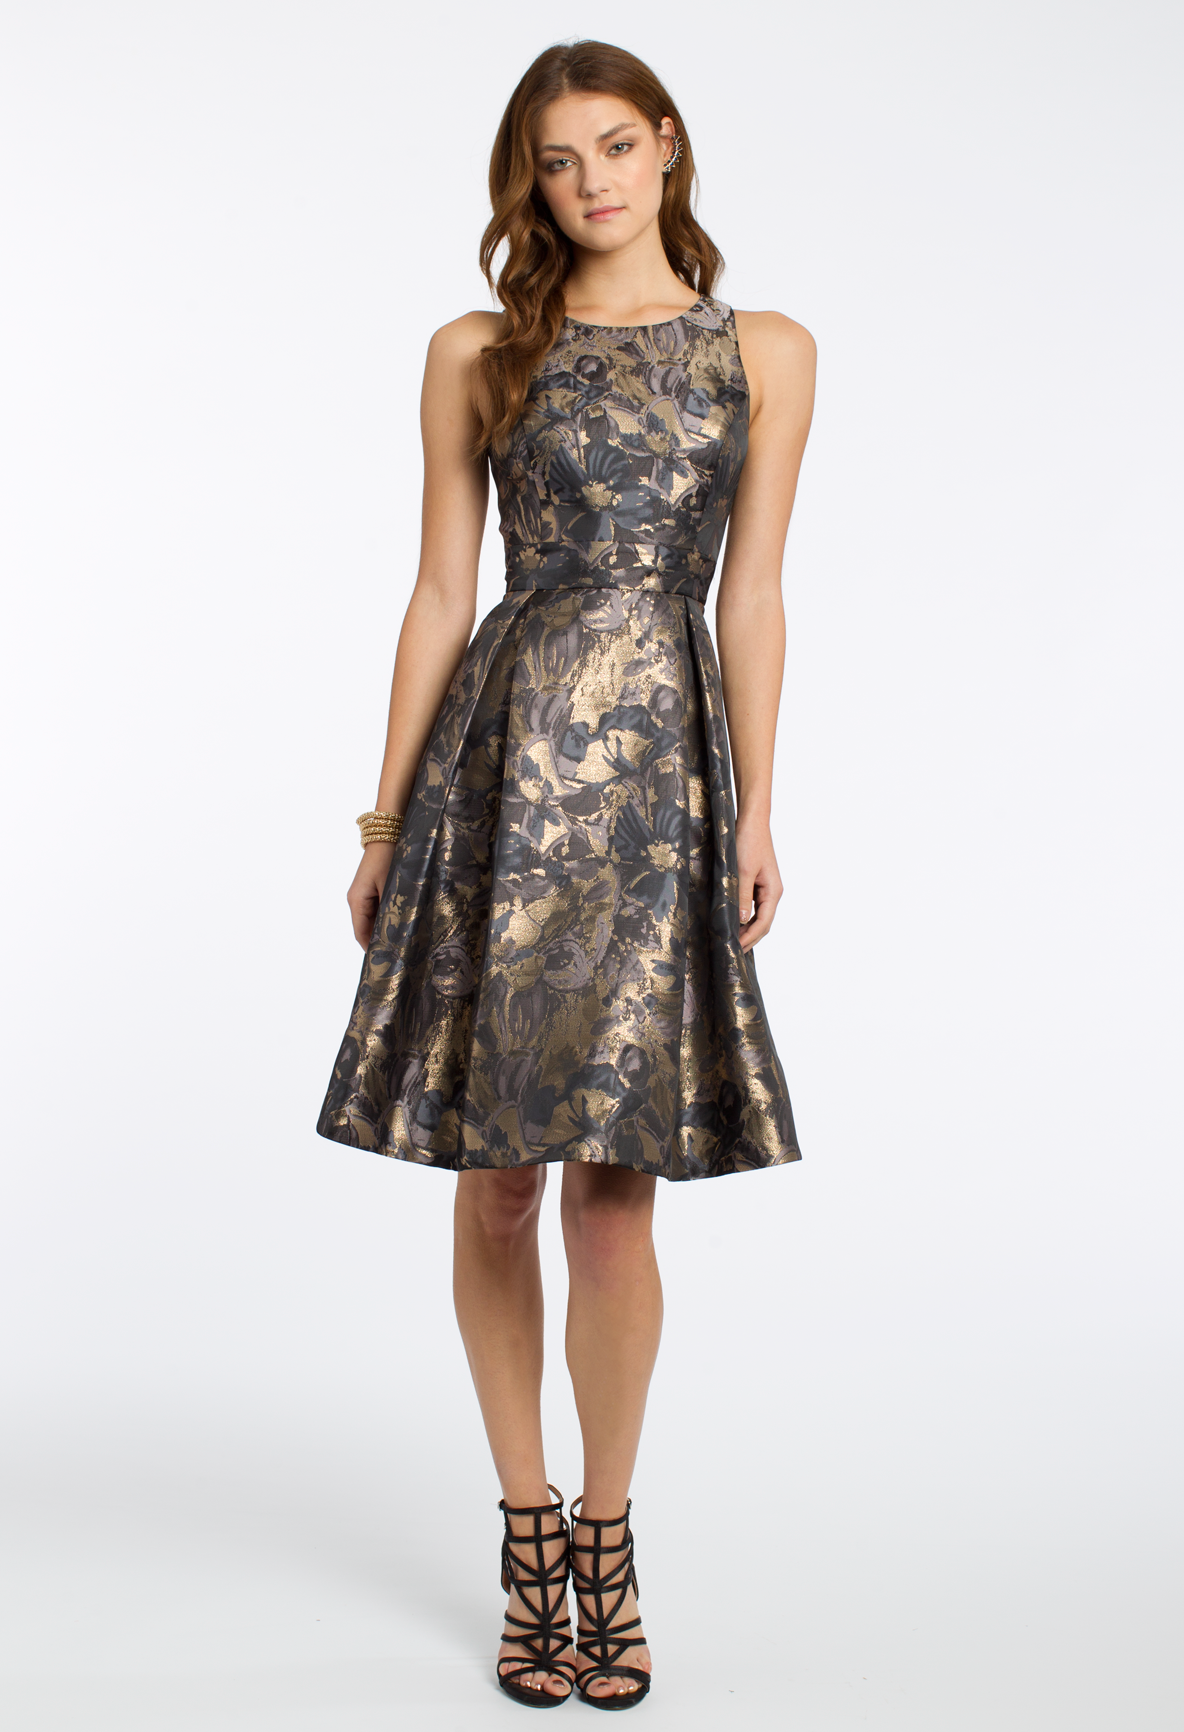 For Low Key Shine Slip Into This Stunning Cocktail Dress For Your Next Formal Affair The Brocade Pleated Midi Style Fit A Dresses Party Dress Cocktail Dress [ 1732 x 1184 Pixel ]